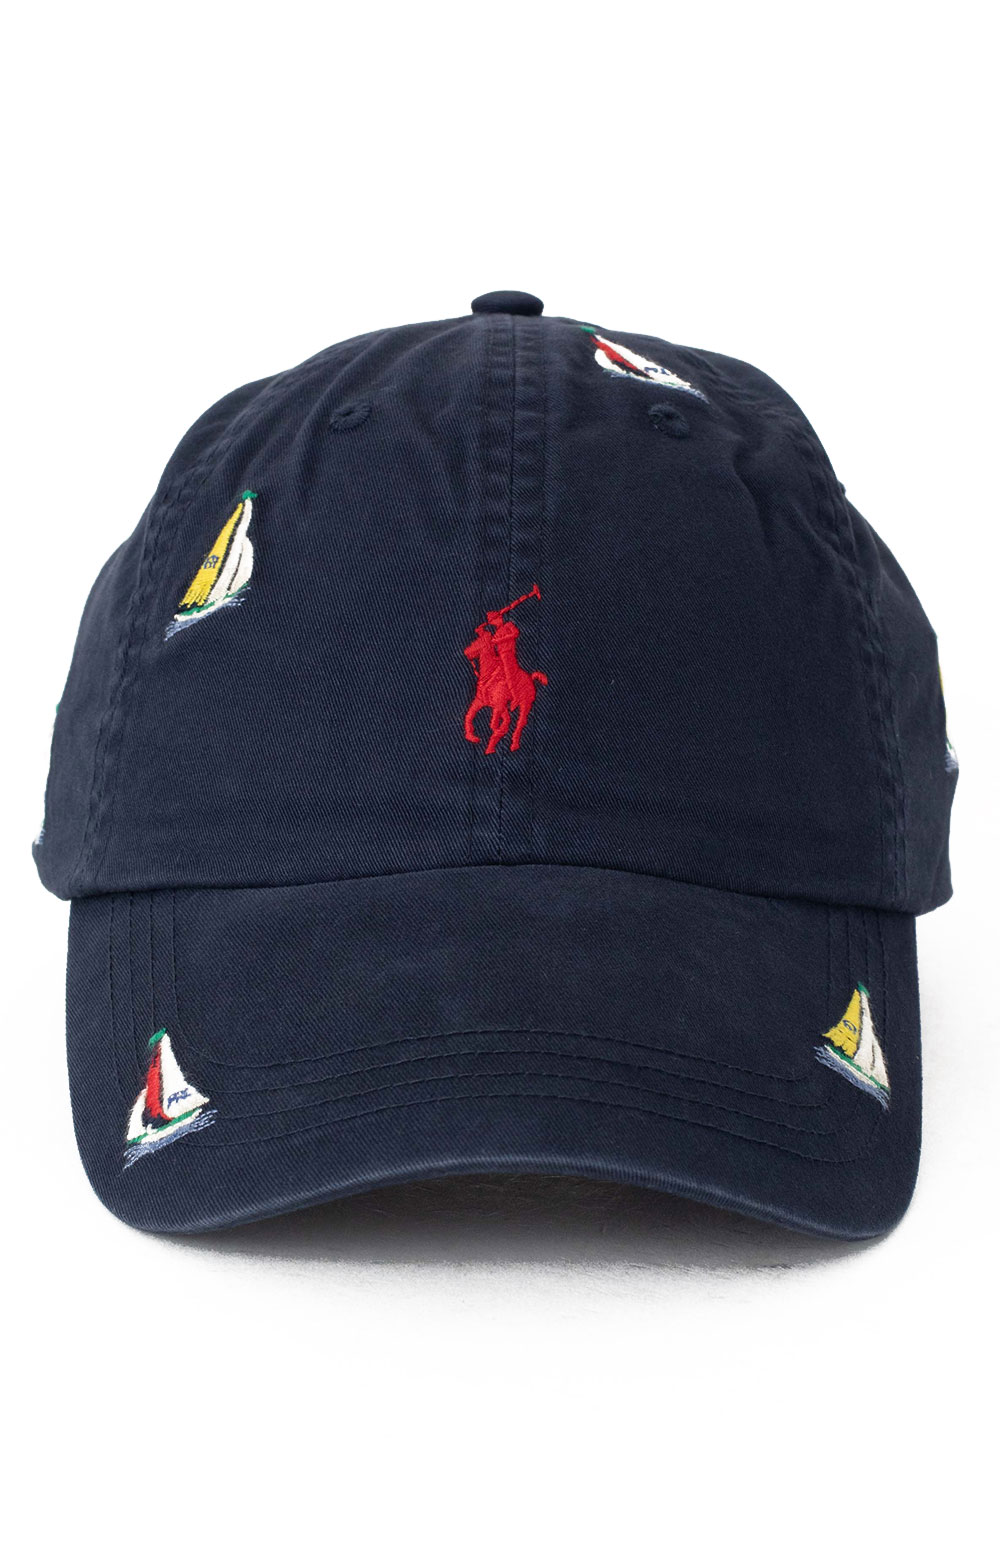 Embroidered Sailboat Ball Cap - Navy 2